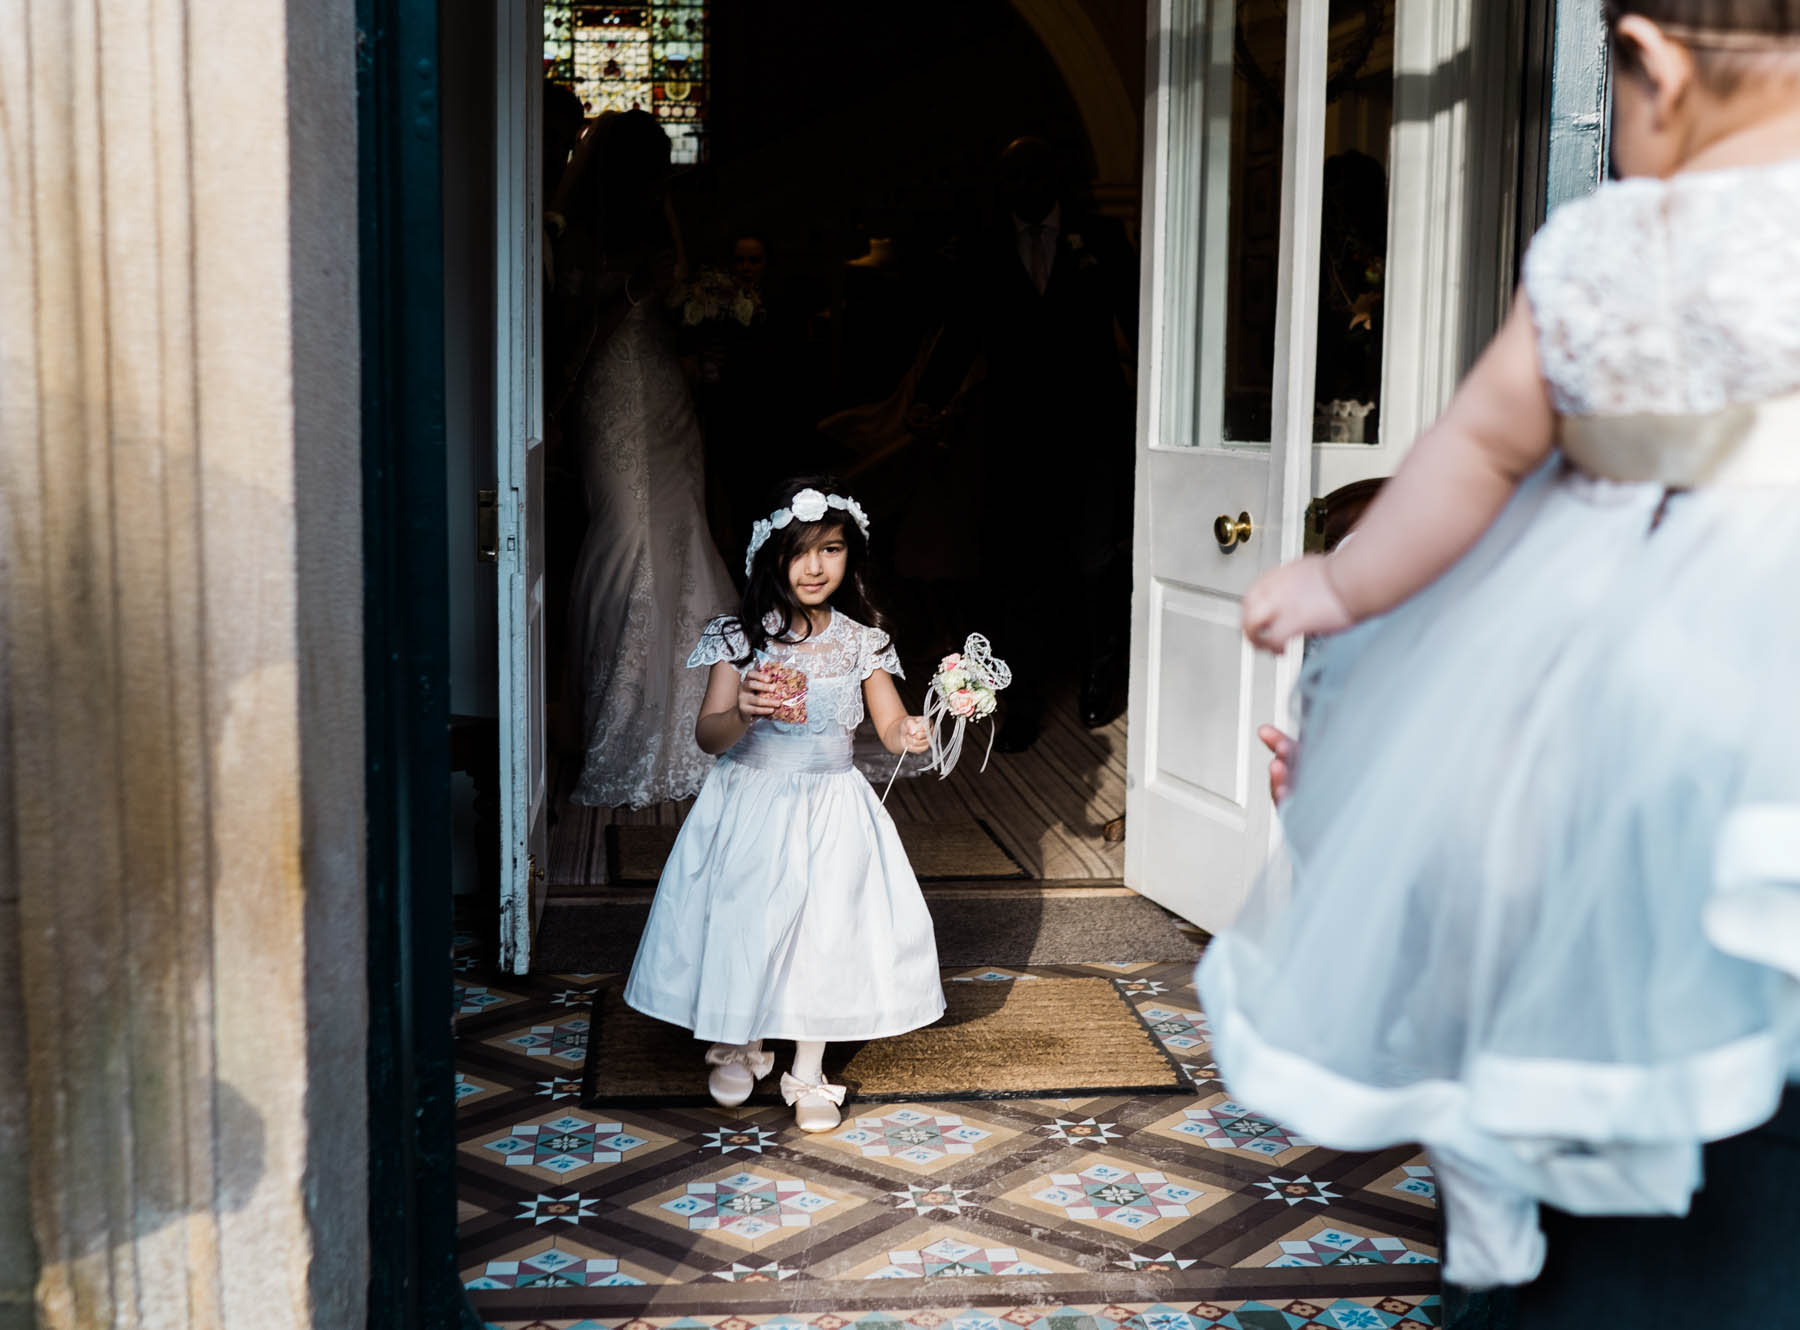 Eshott Hall Wedding Photographer | wedding ceremony flower girl